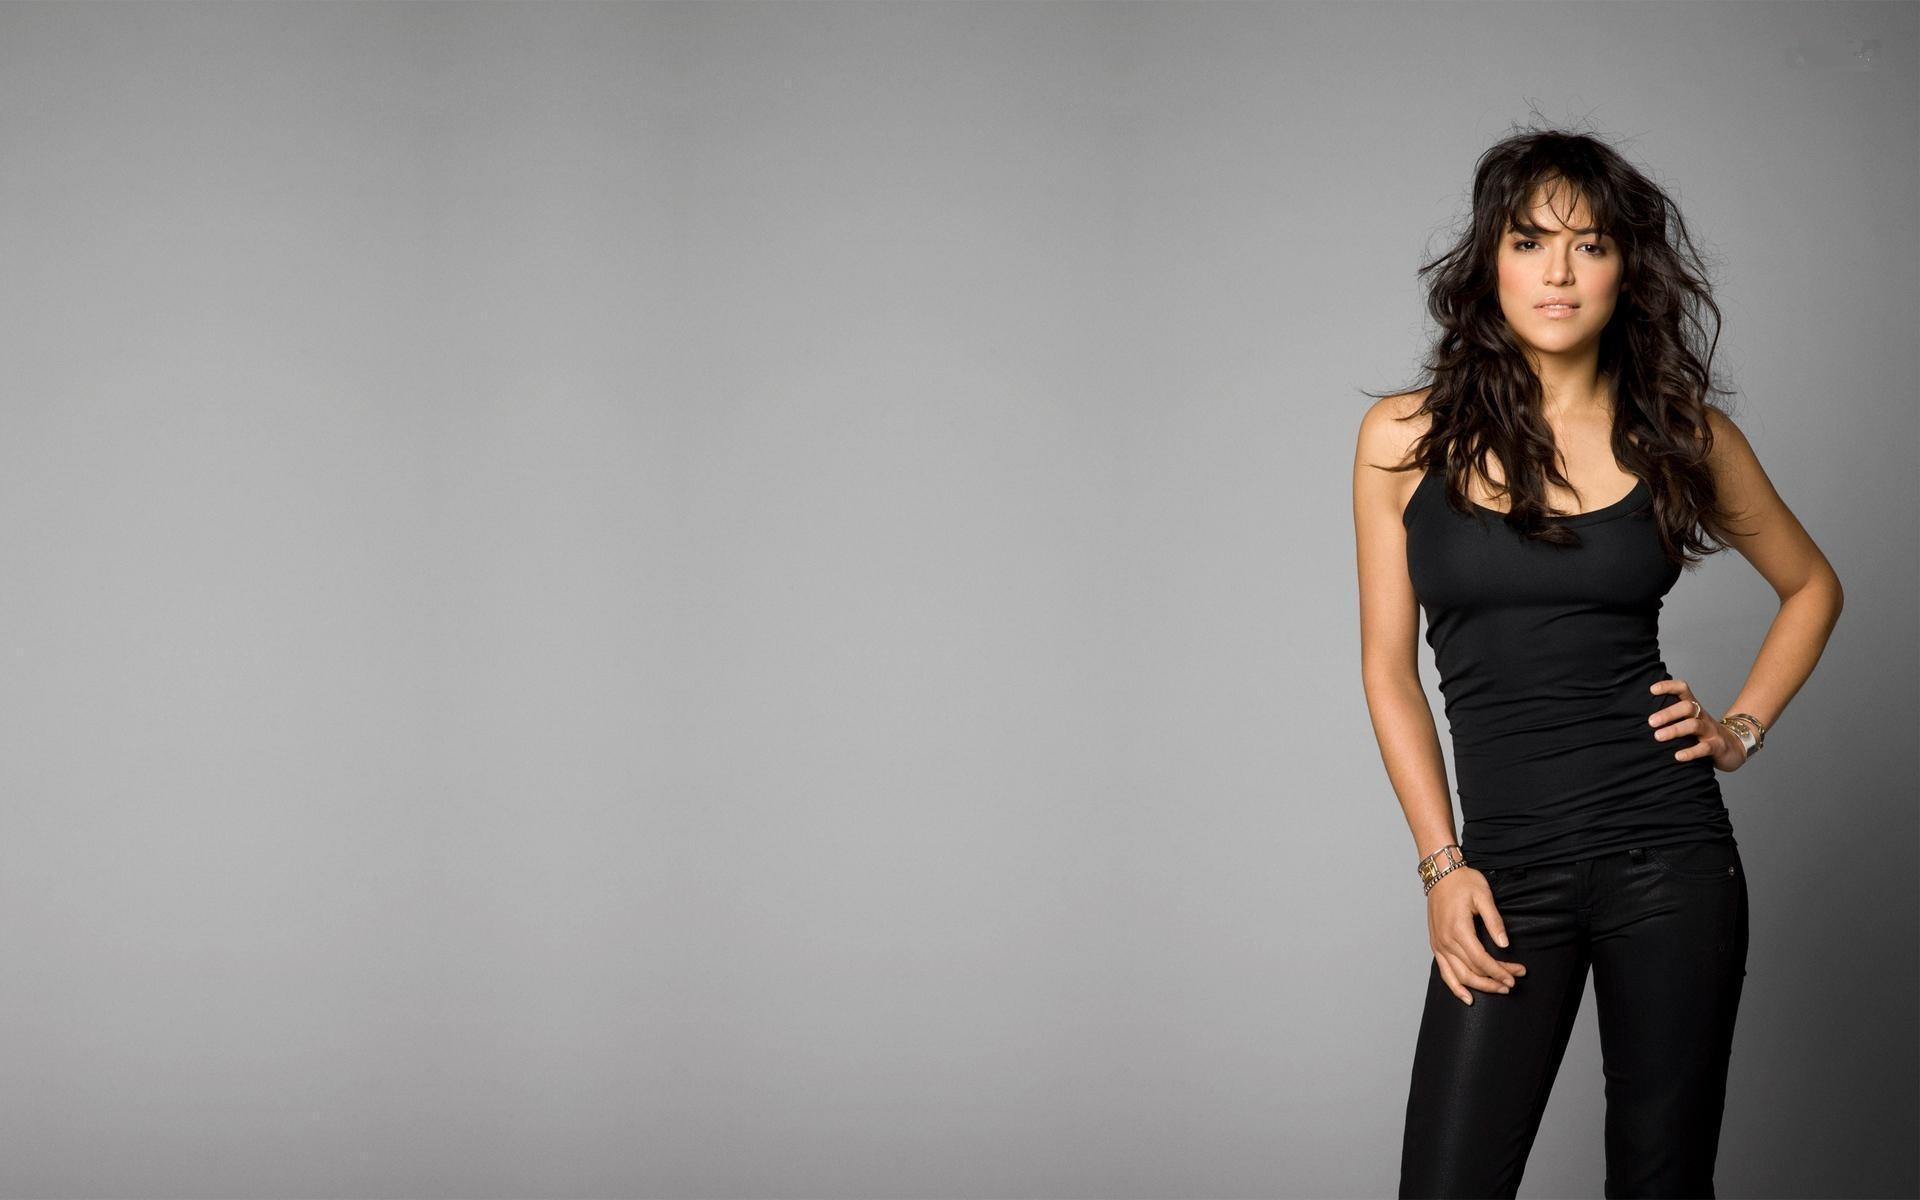 woman Michelle Rodriguez HD Wallpaper